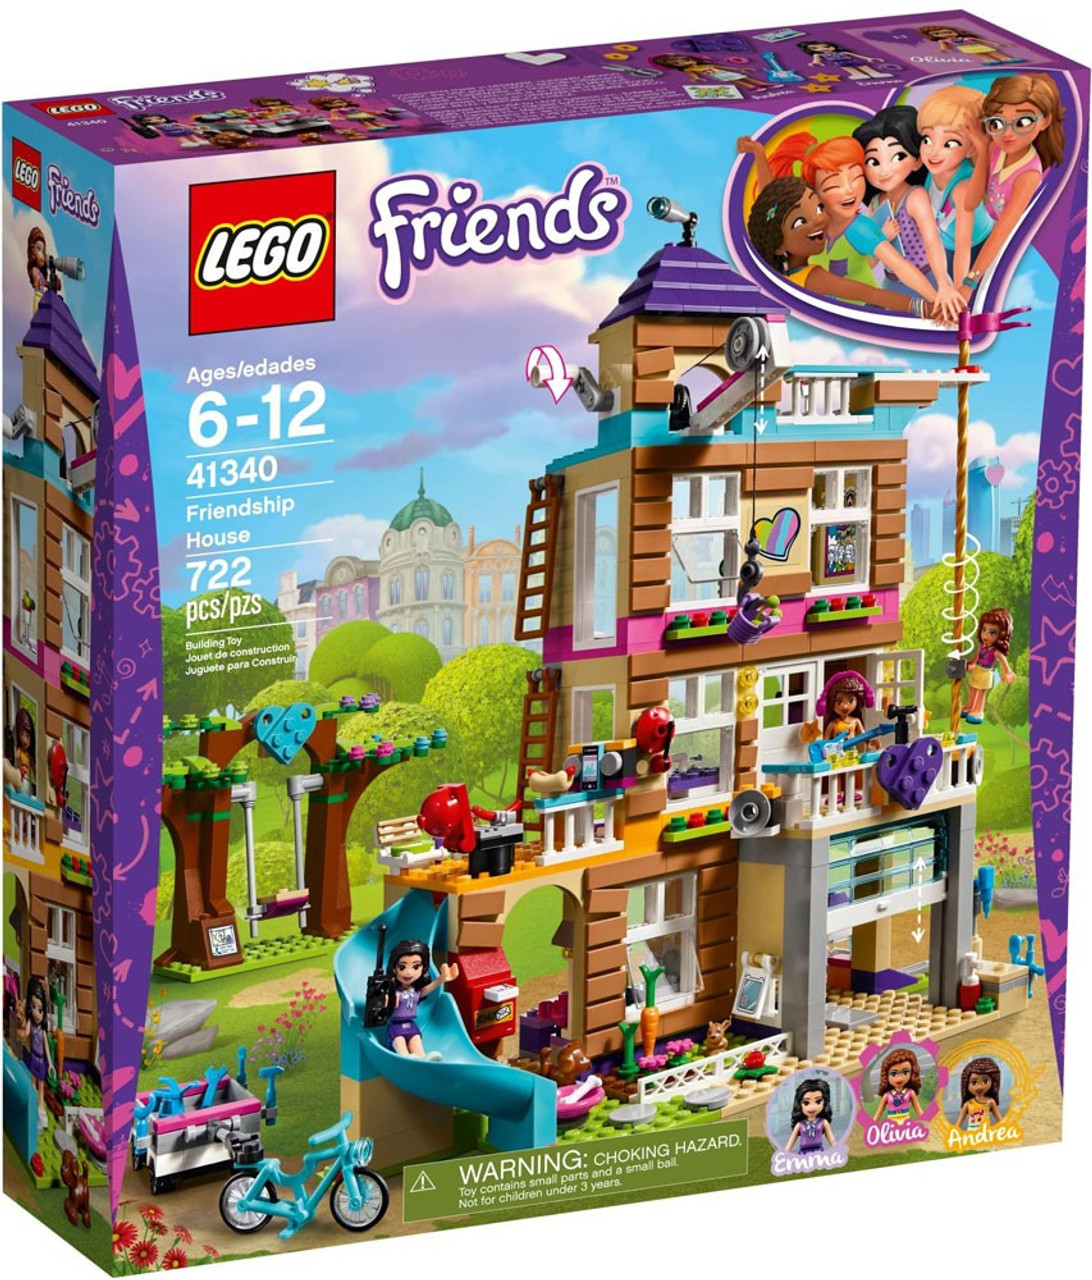 Lego Friendship Friendship House Lego Lego House Set41340 Set41340 Tc3ulF1KJ5